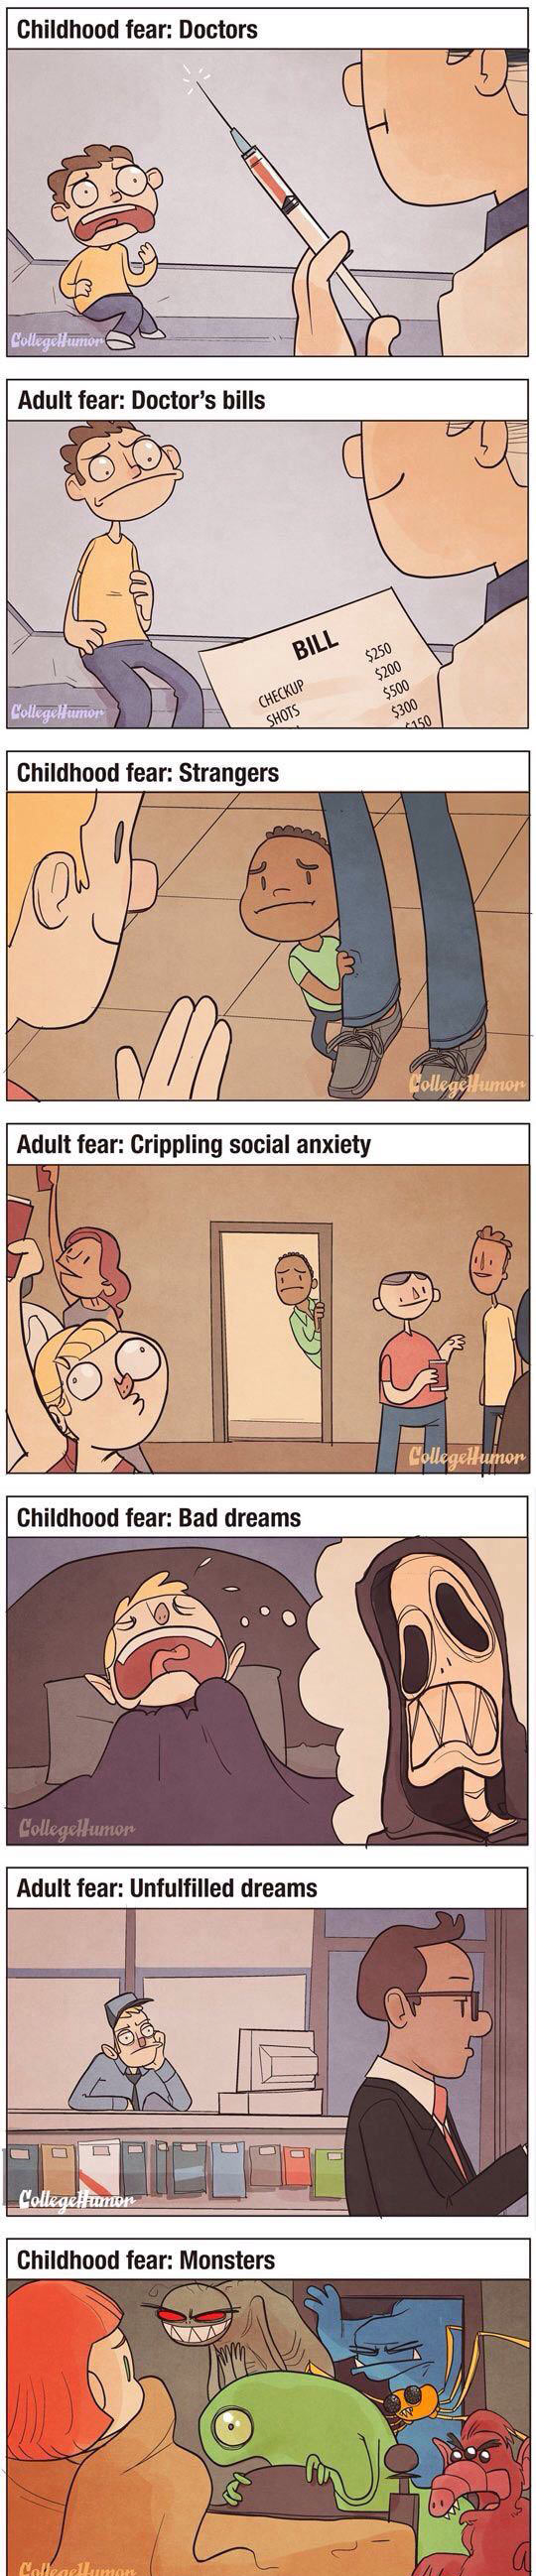 funny-doctor-Childhood-adulthood-fear